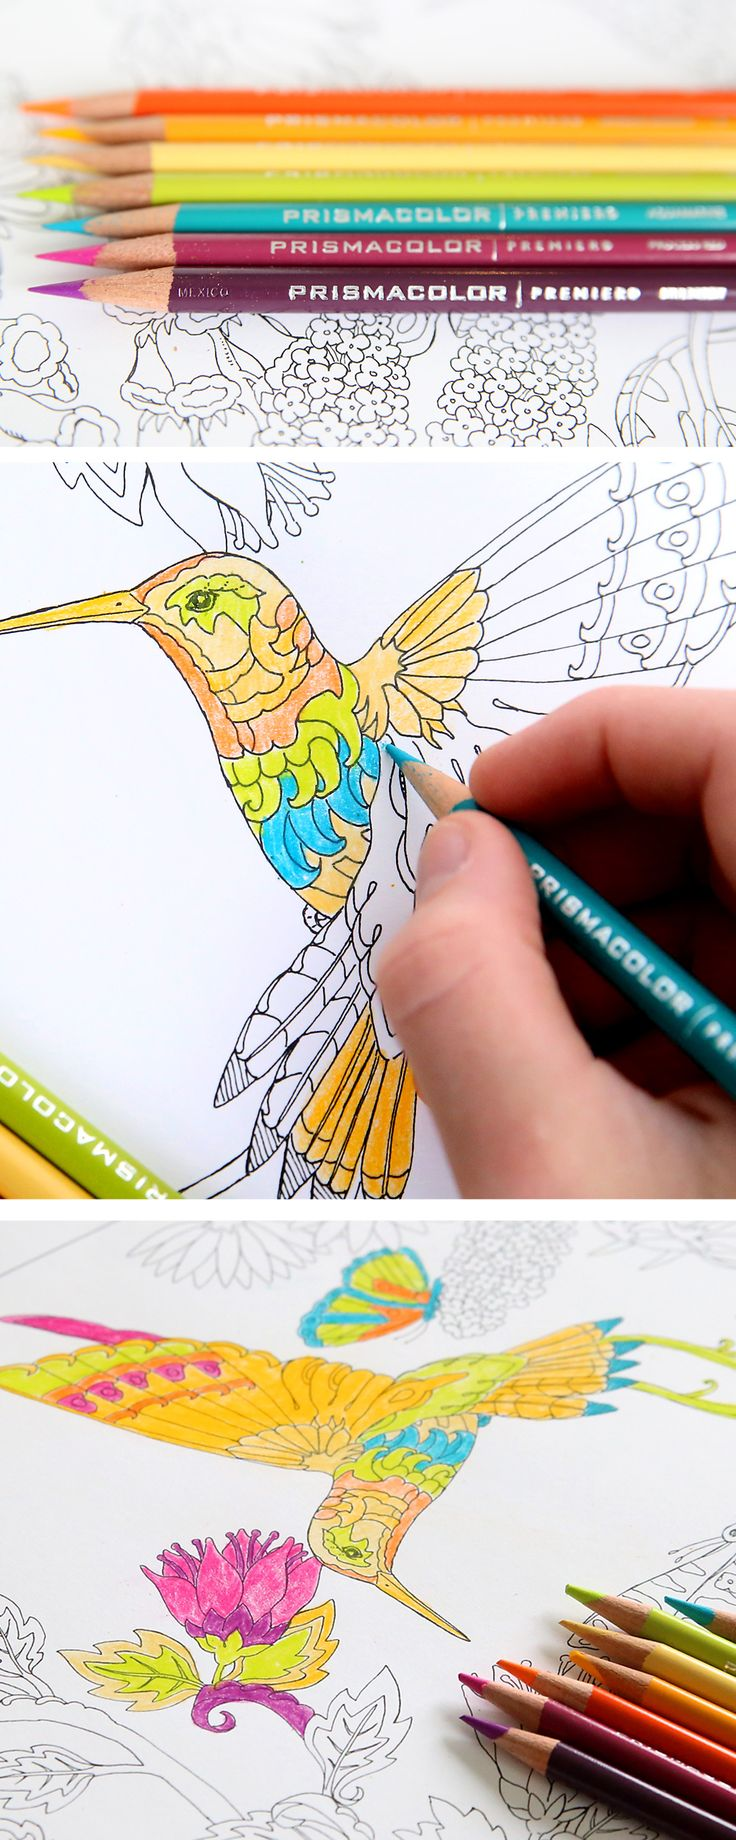 Coloring book michaels - For Kids And Adults That Love To Color Find Free Coloring Sheets And Pinprismacolor